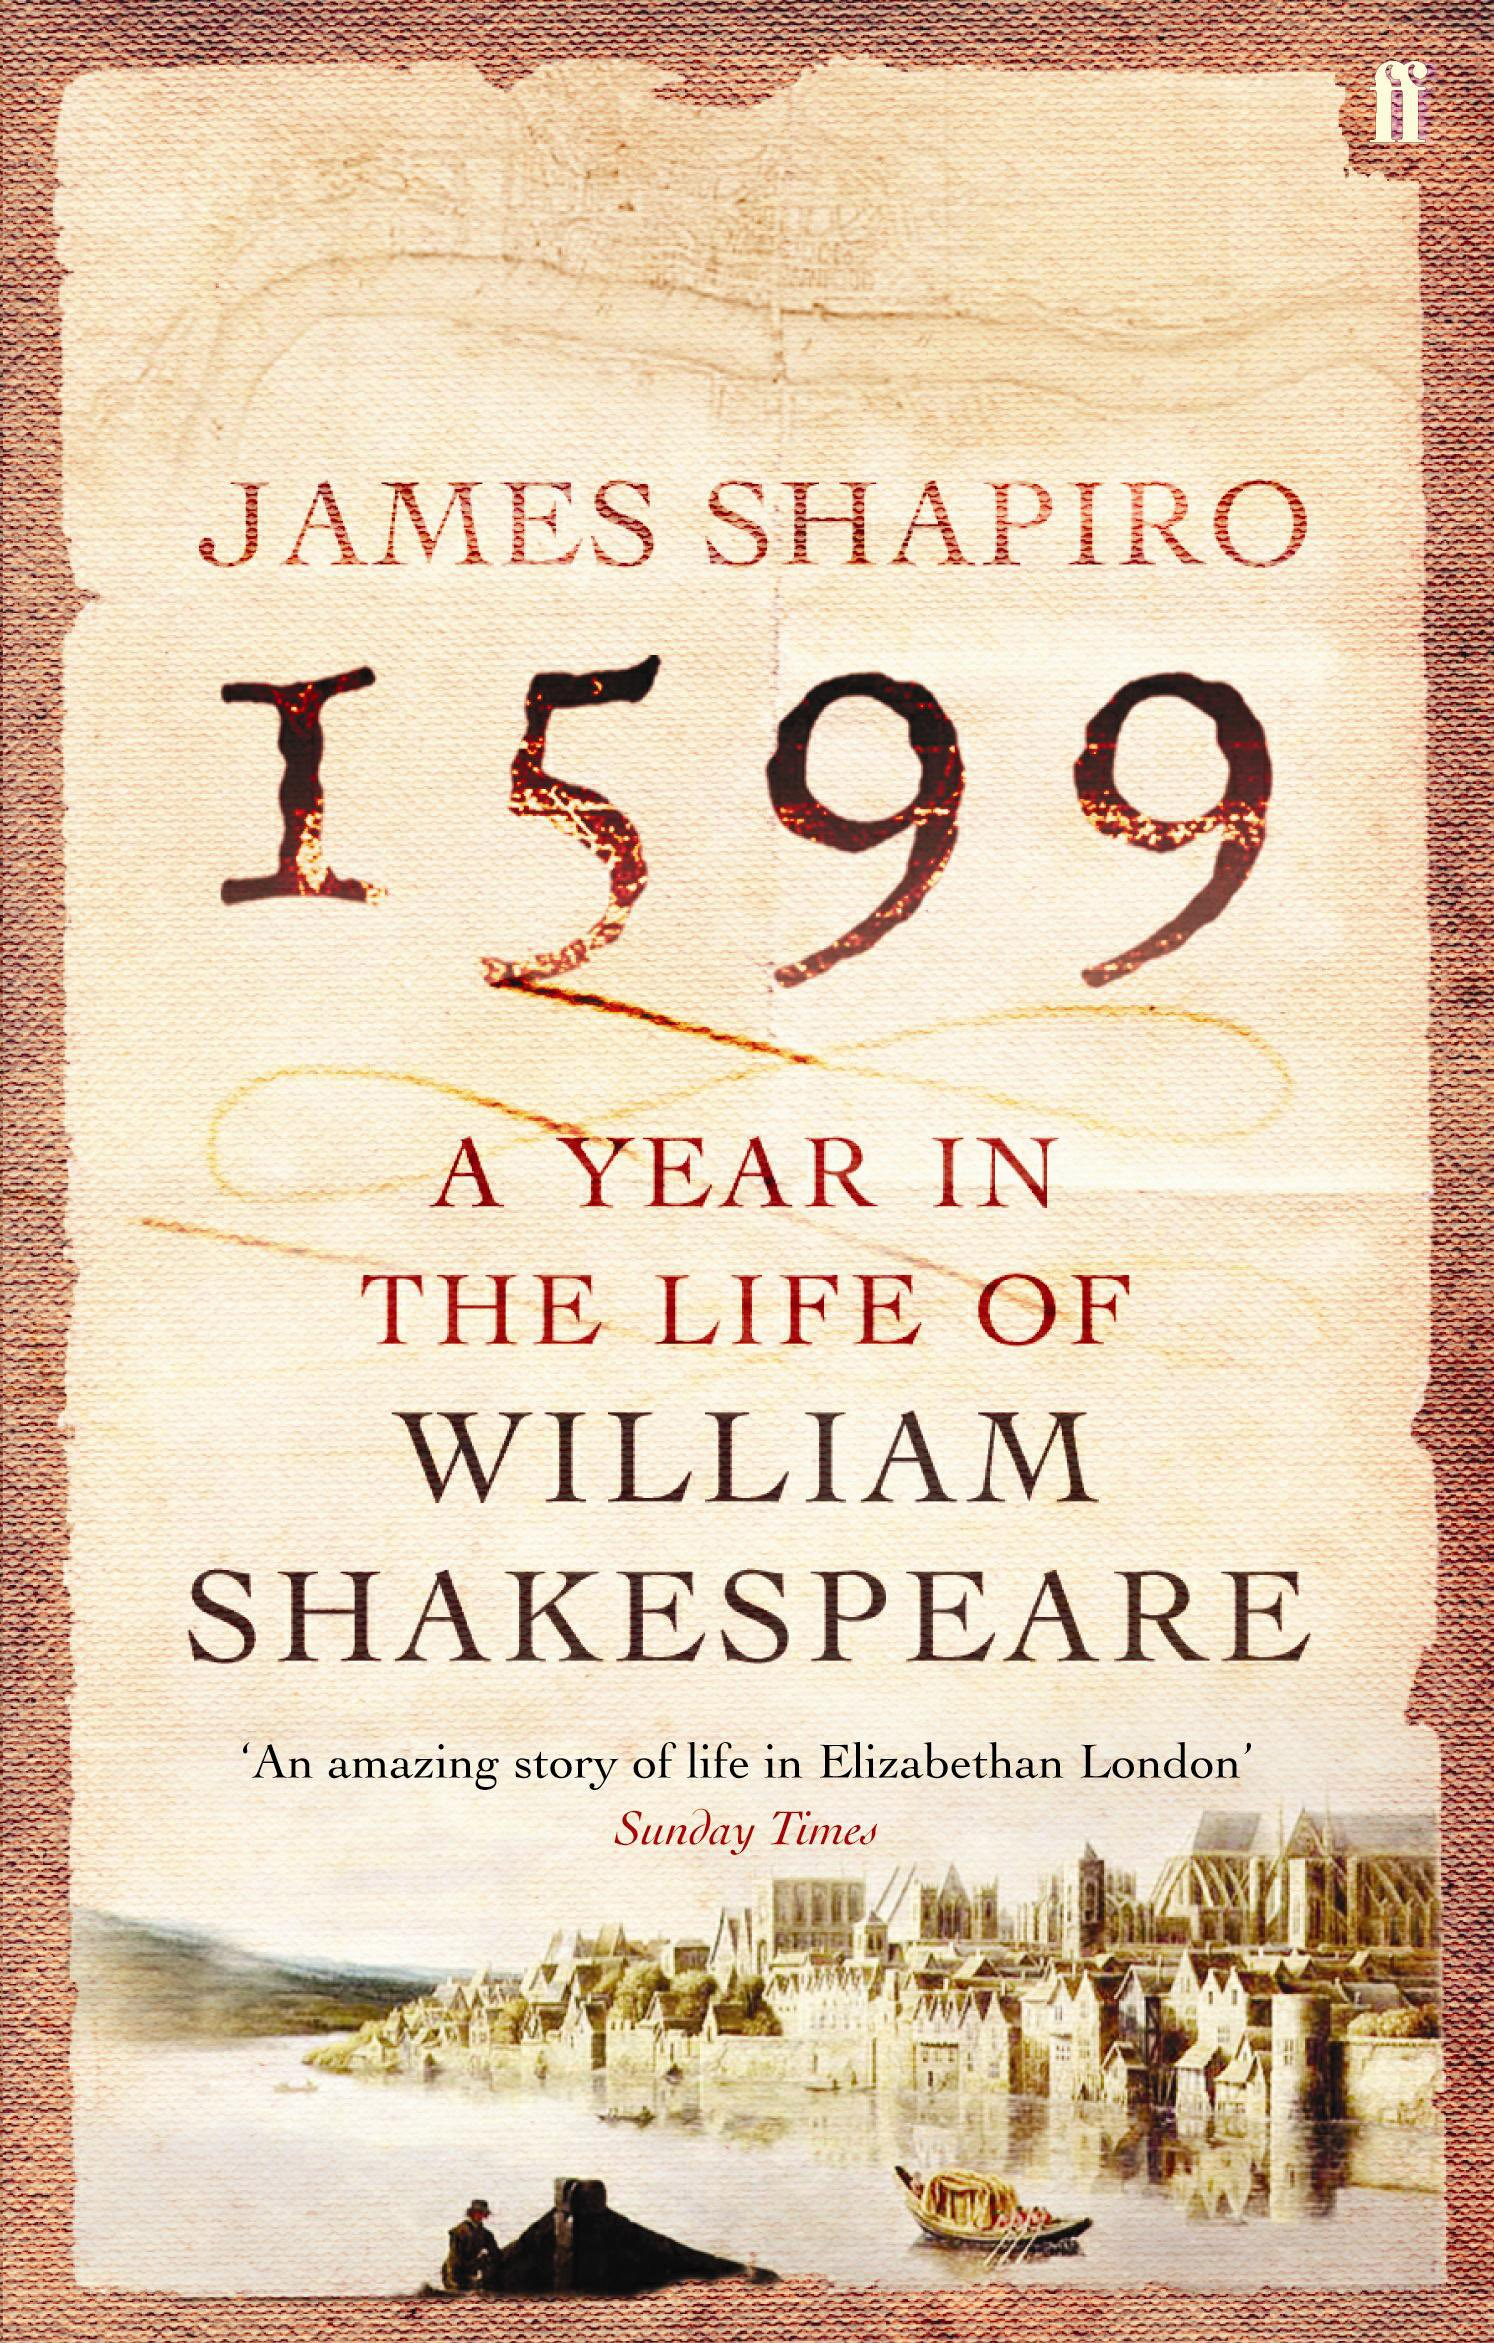 1599: a year in the life of William Shakespeare: James Shapiro:  9780571214815: Amazon.com: Books